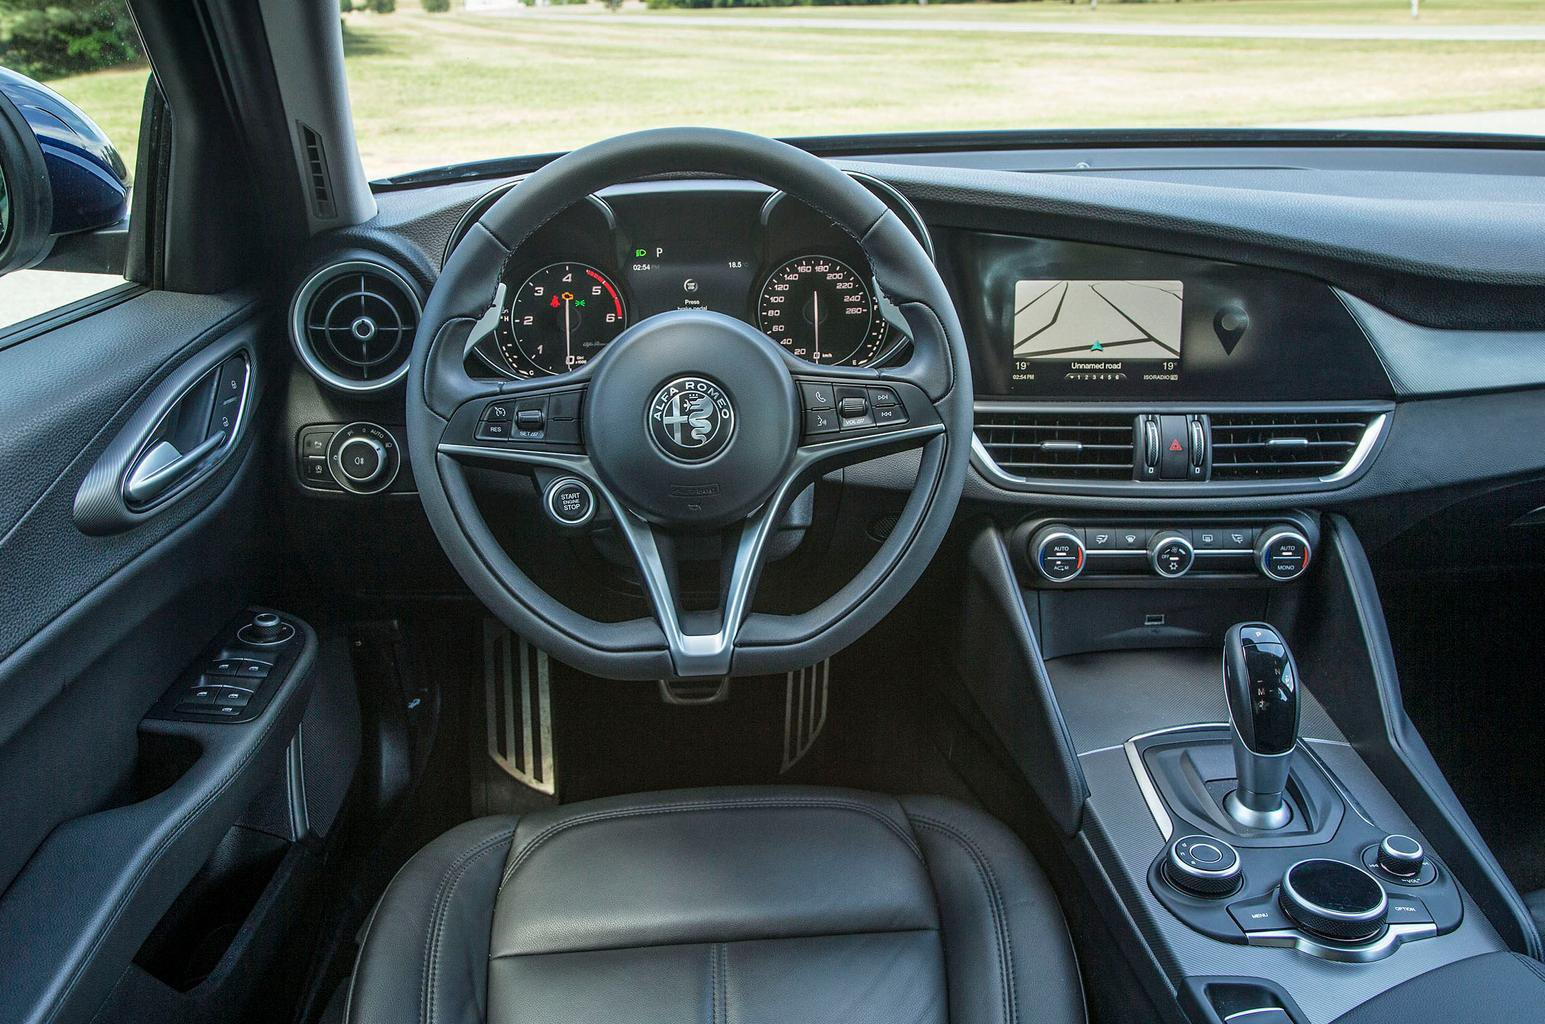 2016 Alfa Romeo Giulia 2.2 MultiJet 180 review